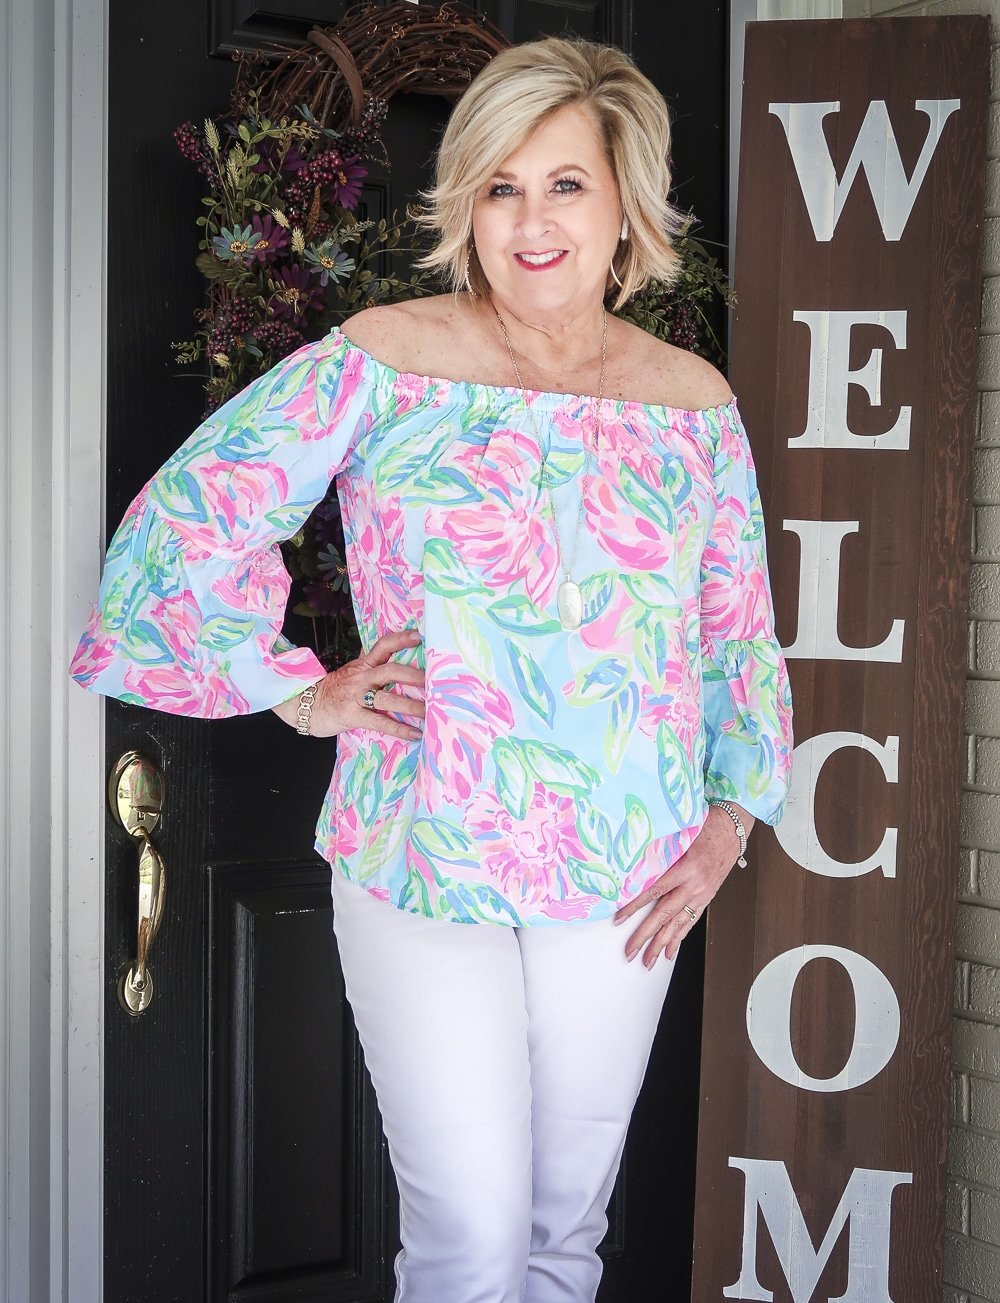 Fashion Blogger 50 Is Not Old wearing a colorful off the shoulder top from Lilly Pulitzer and gold jewelry